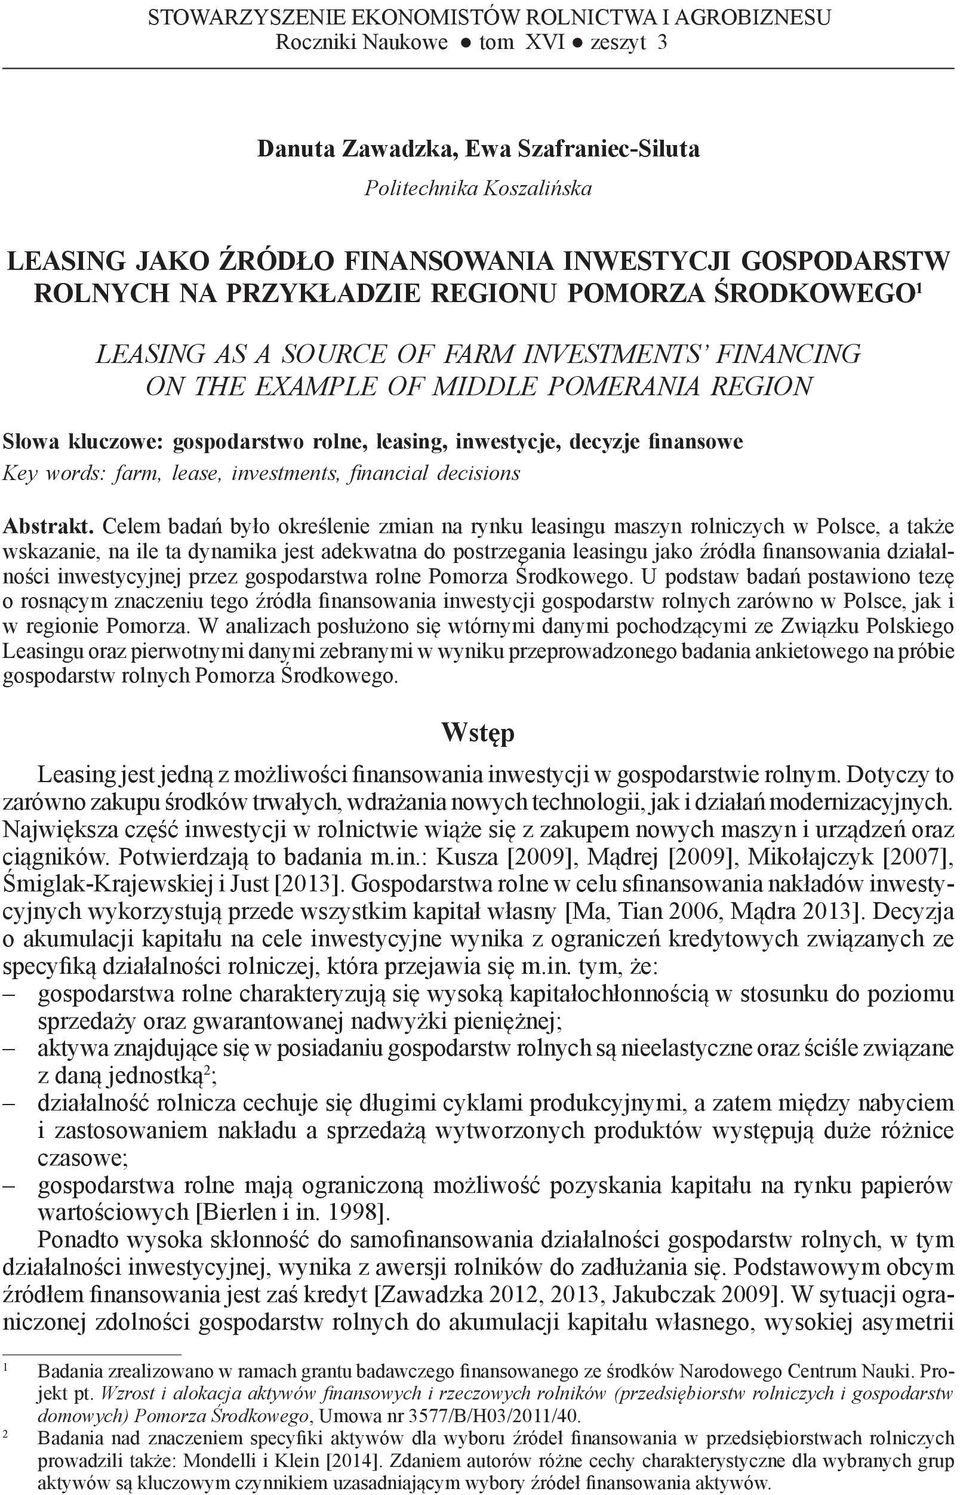 ŚRODKOWEGO 1 LEASING AS A SOURCE OF FARM INVESTMENTS FINANCING ON THE EXAMPLE OF MIDDLE POMERANIA REGION Słowa kluczowe: gospodarstwo rolne, leasing, inwestycje, decyzje finansowe Key words: farm,